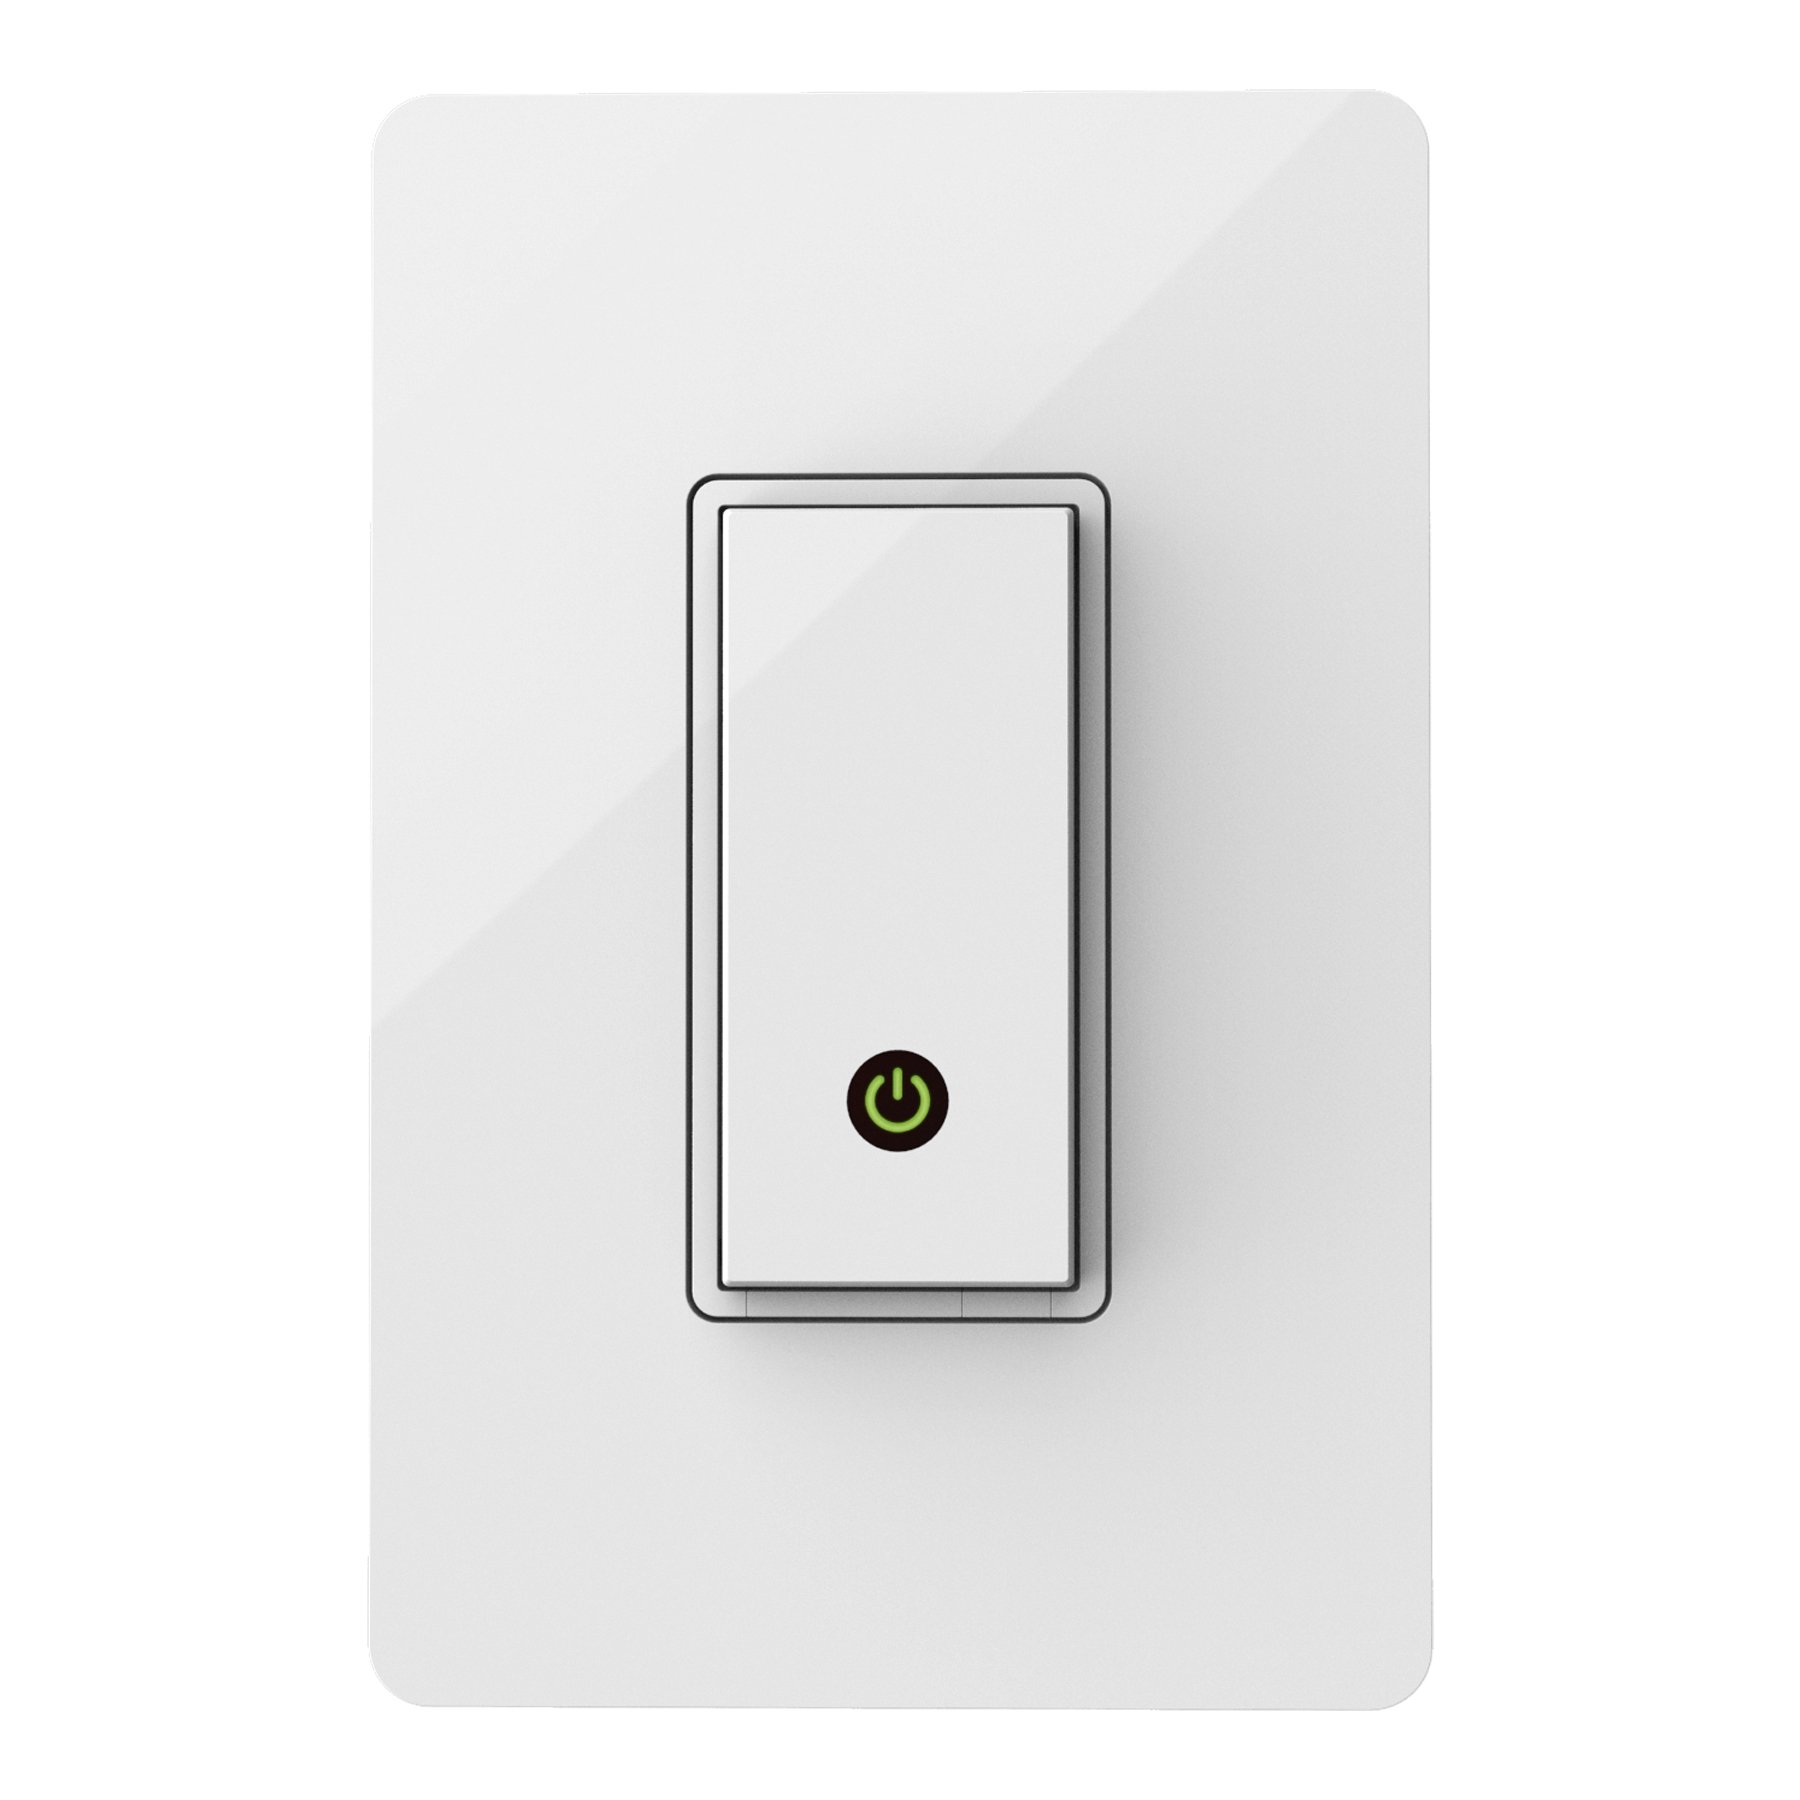 Wemo Light Switch, Wi-Fi enabled, Works with Alexa and Google Assistant